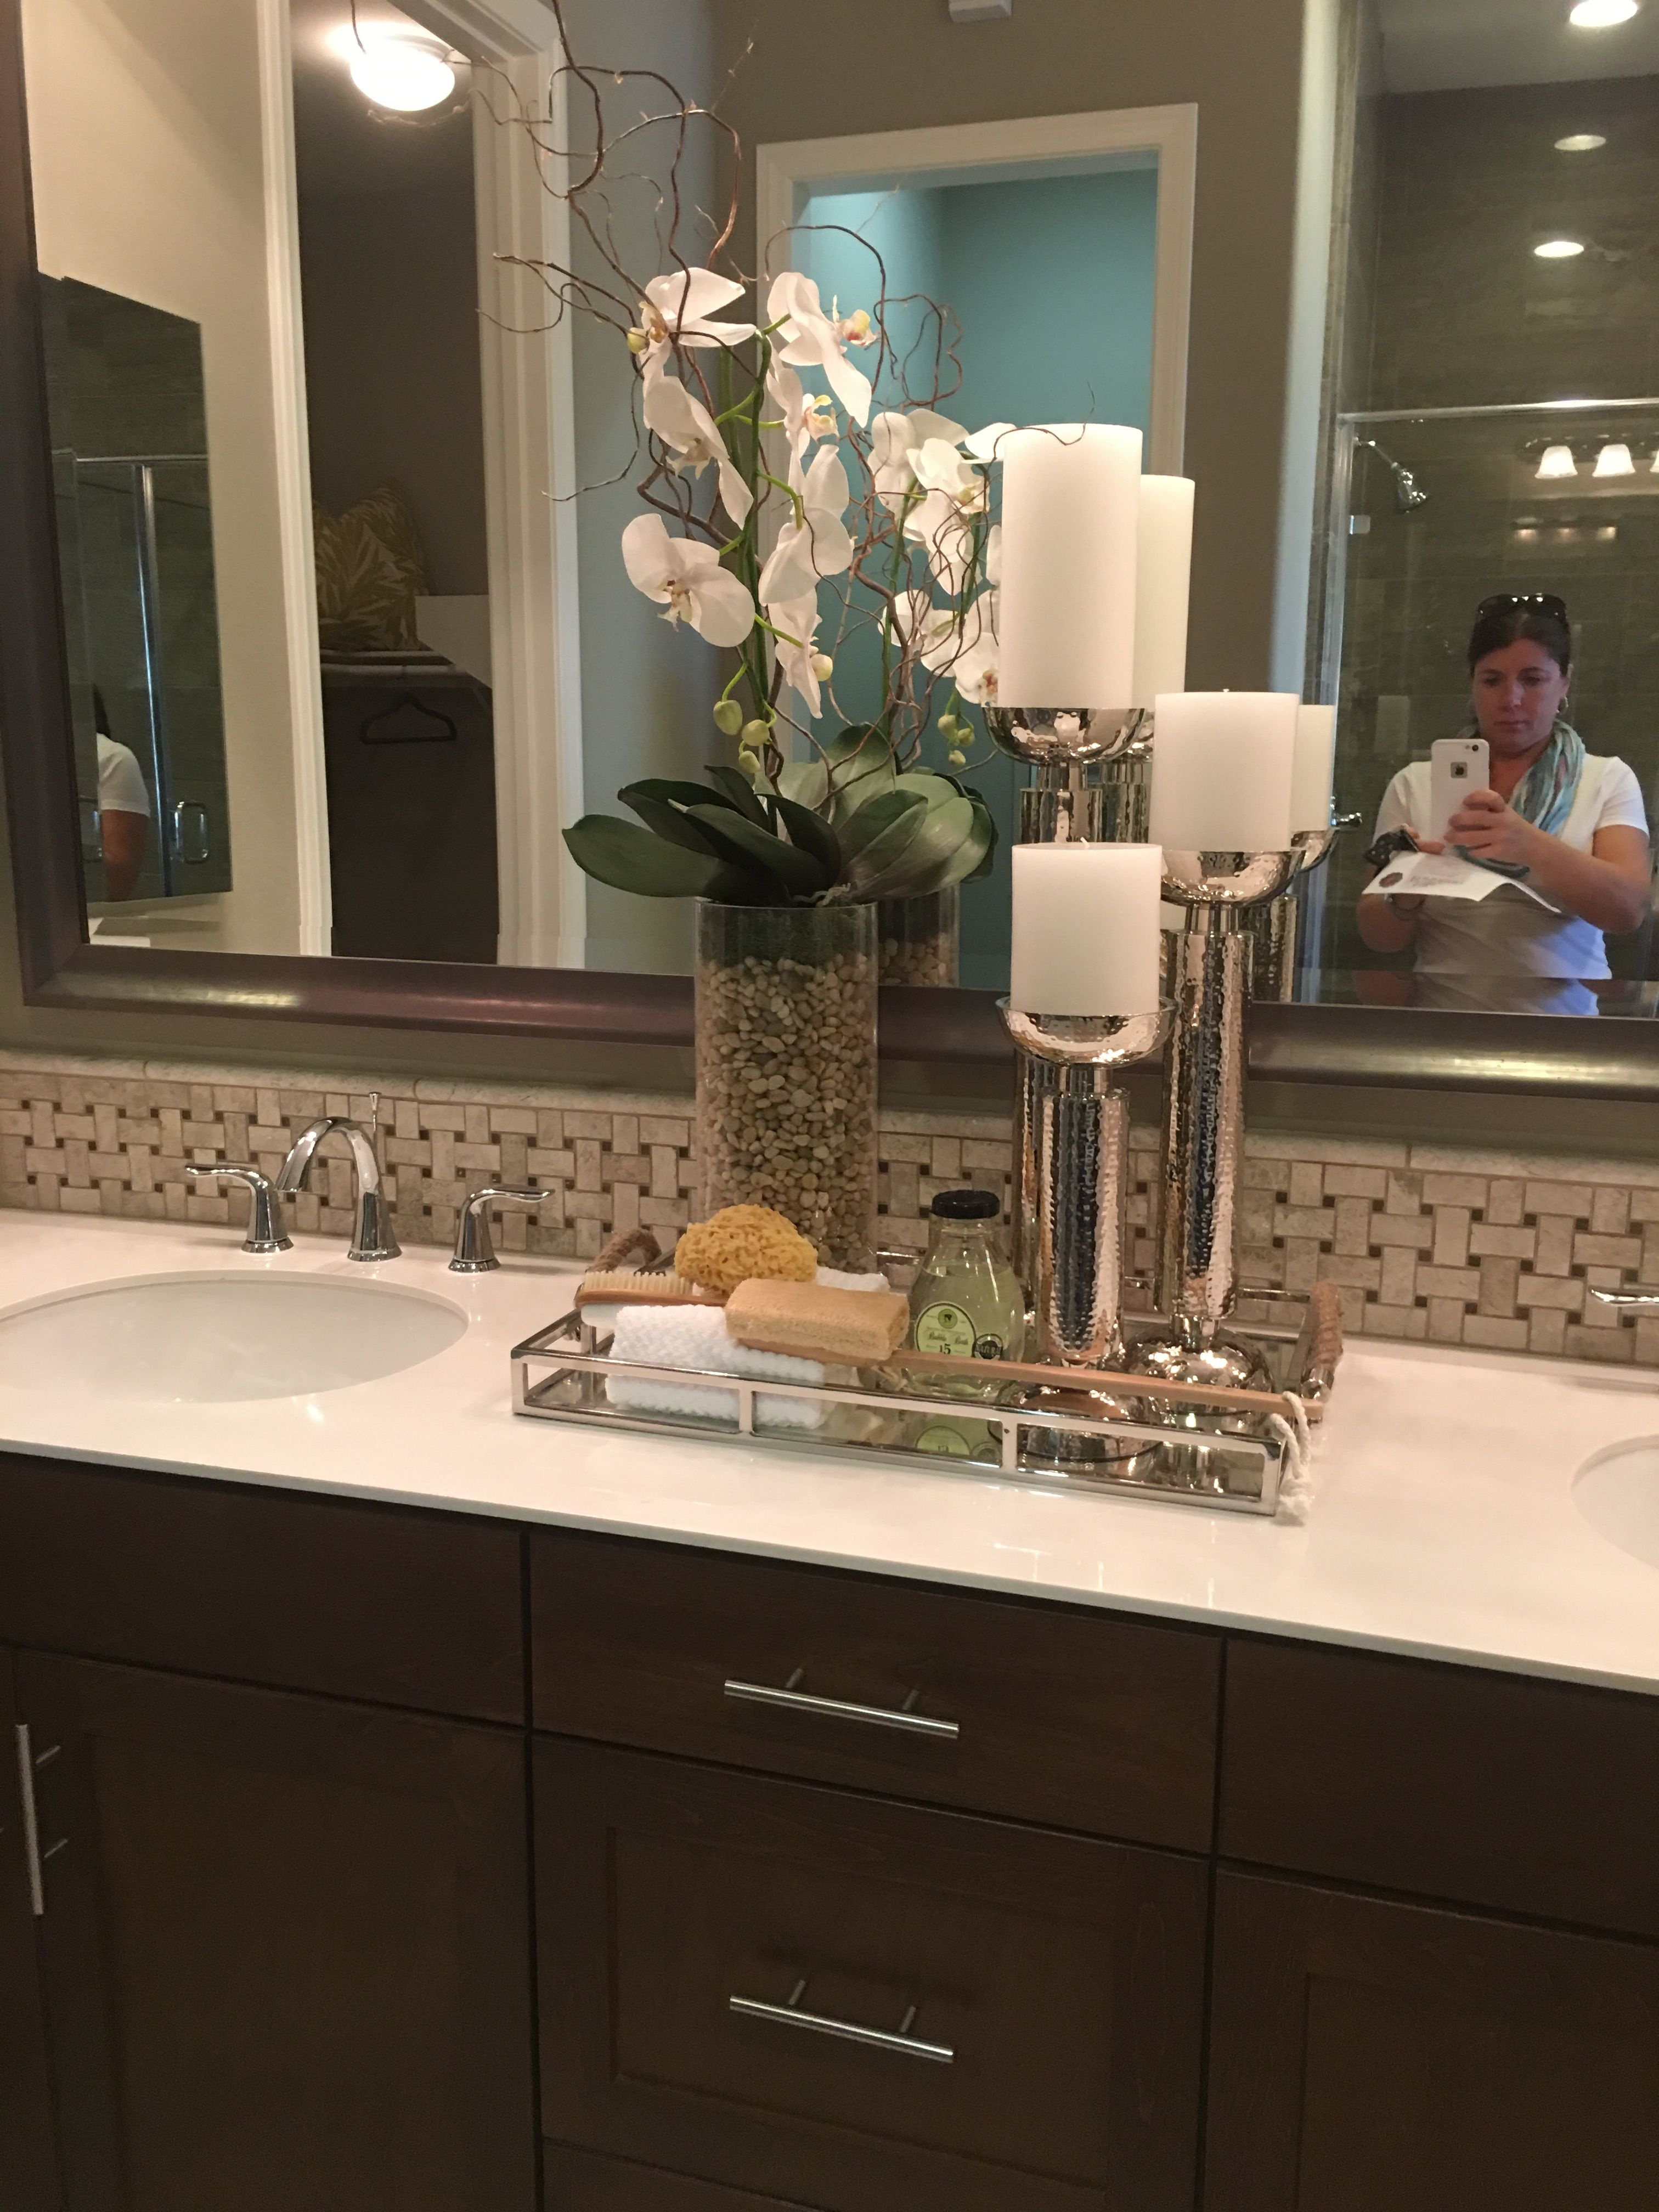 Pin By Mom On Home Guest Bath In 2019 Bathroom Counter